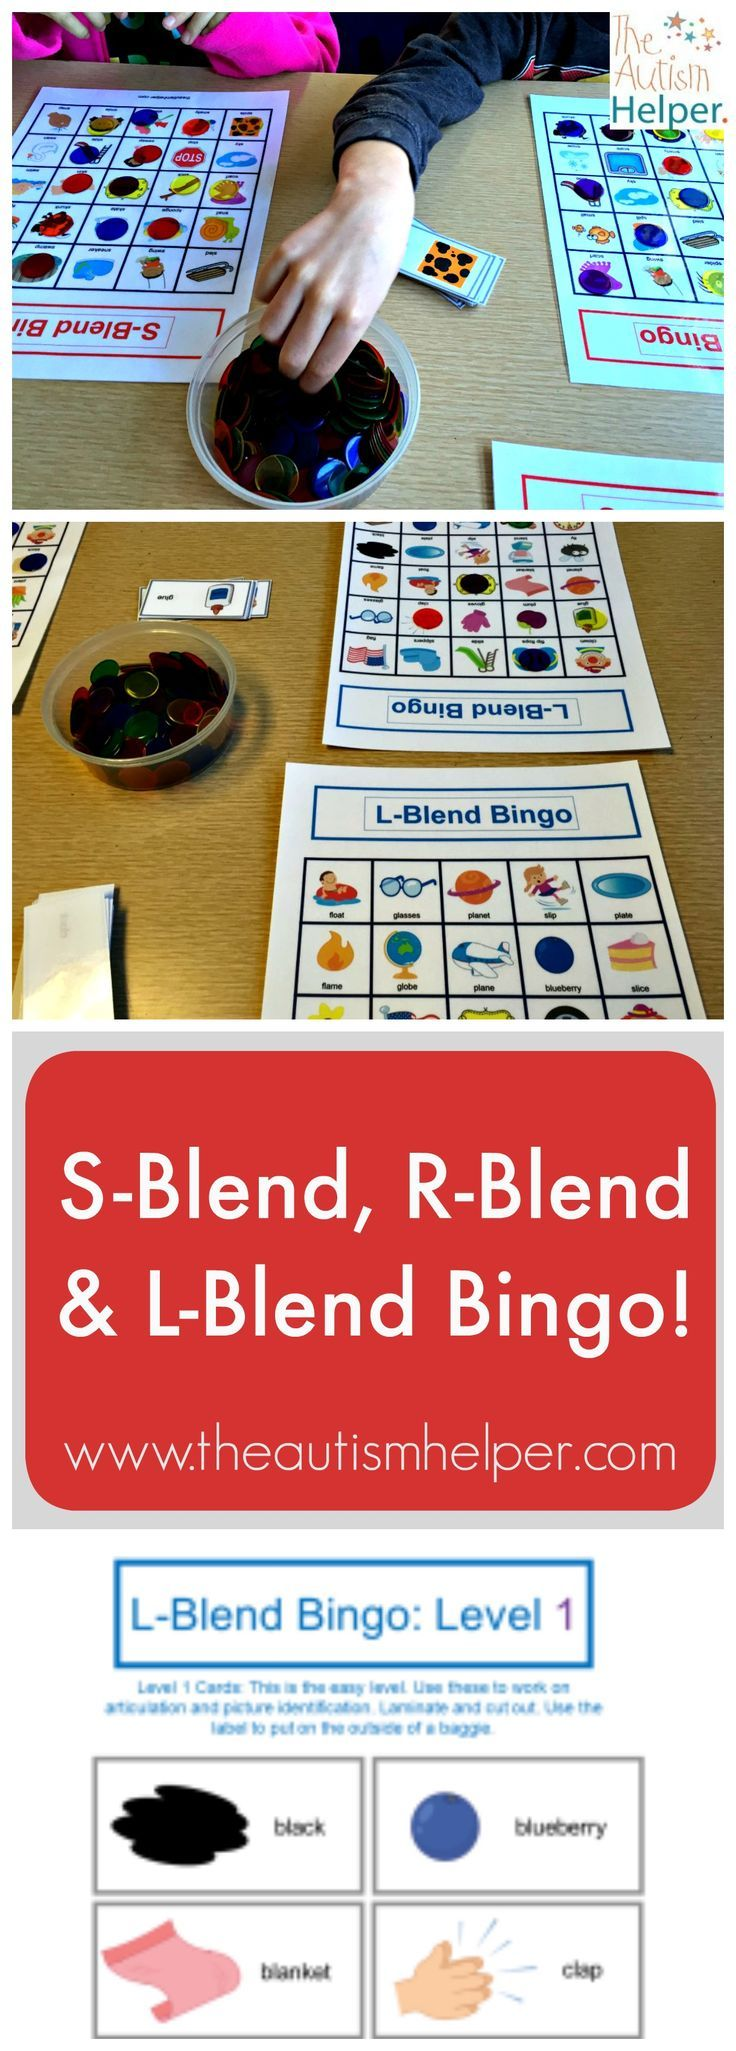 S-Blend, R-Blend & L-Blend Bingo is a great resource built with engaging target words & pictures to work on building vocabulary skills or identifying blends in words with your students. Thank you Sarah the Speech Helper! From theautismhelper.com.